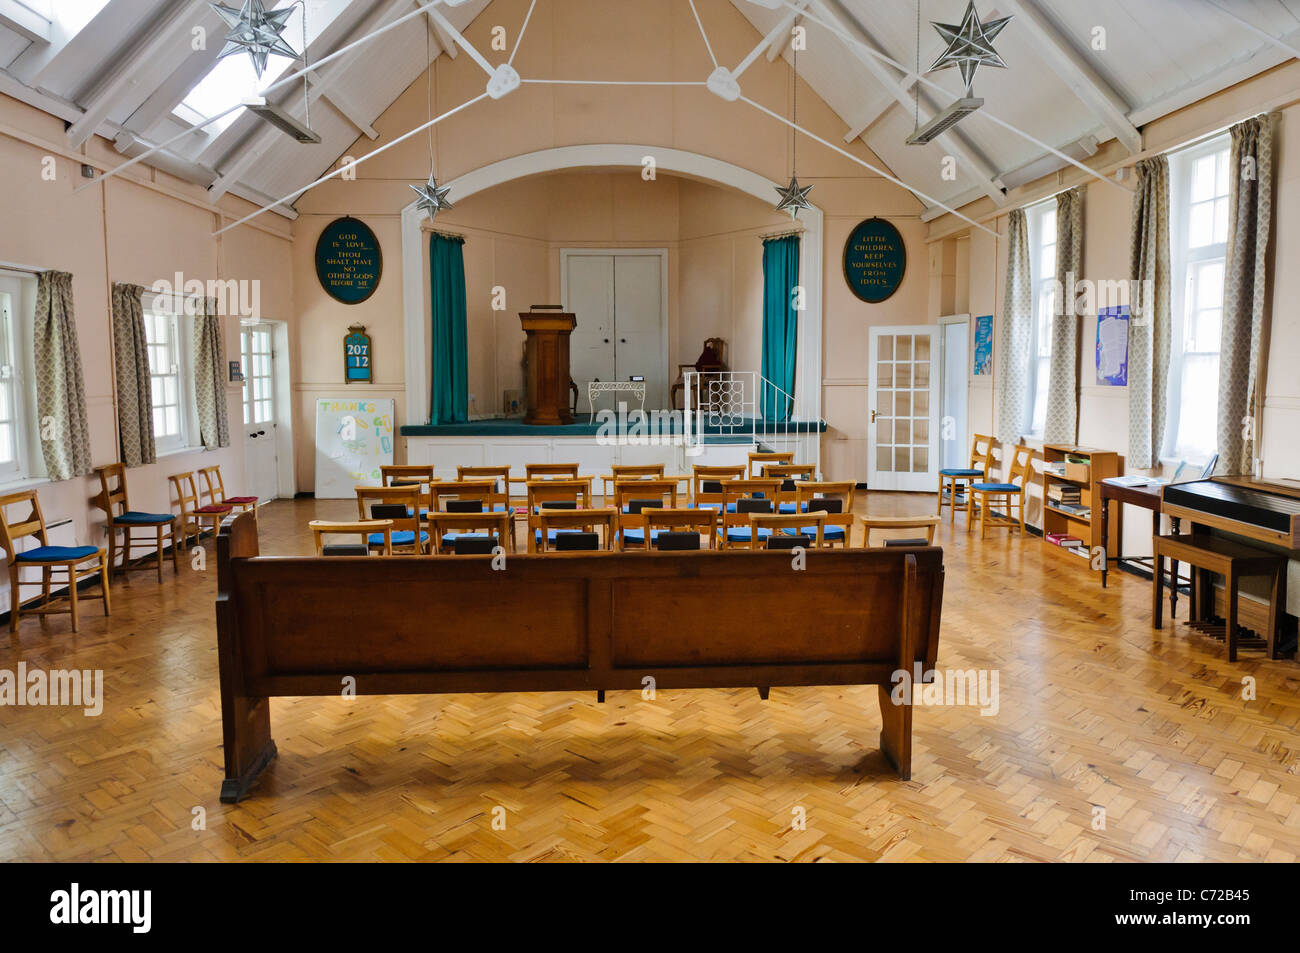 Sunday school hall at the Church of Jesus Christ Scientist, Belfast - Stock Image